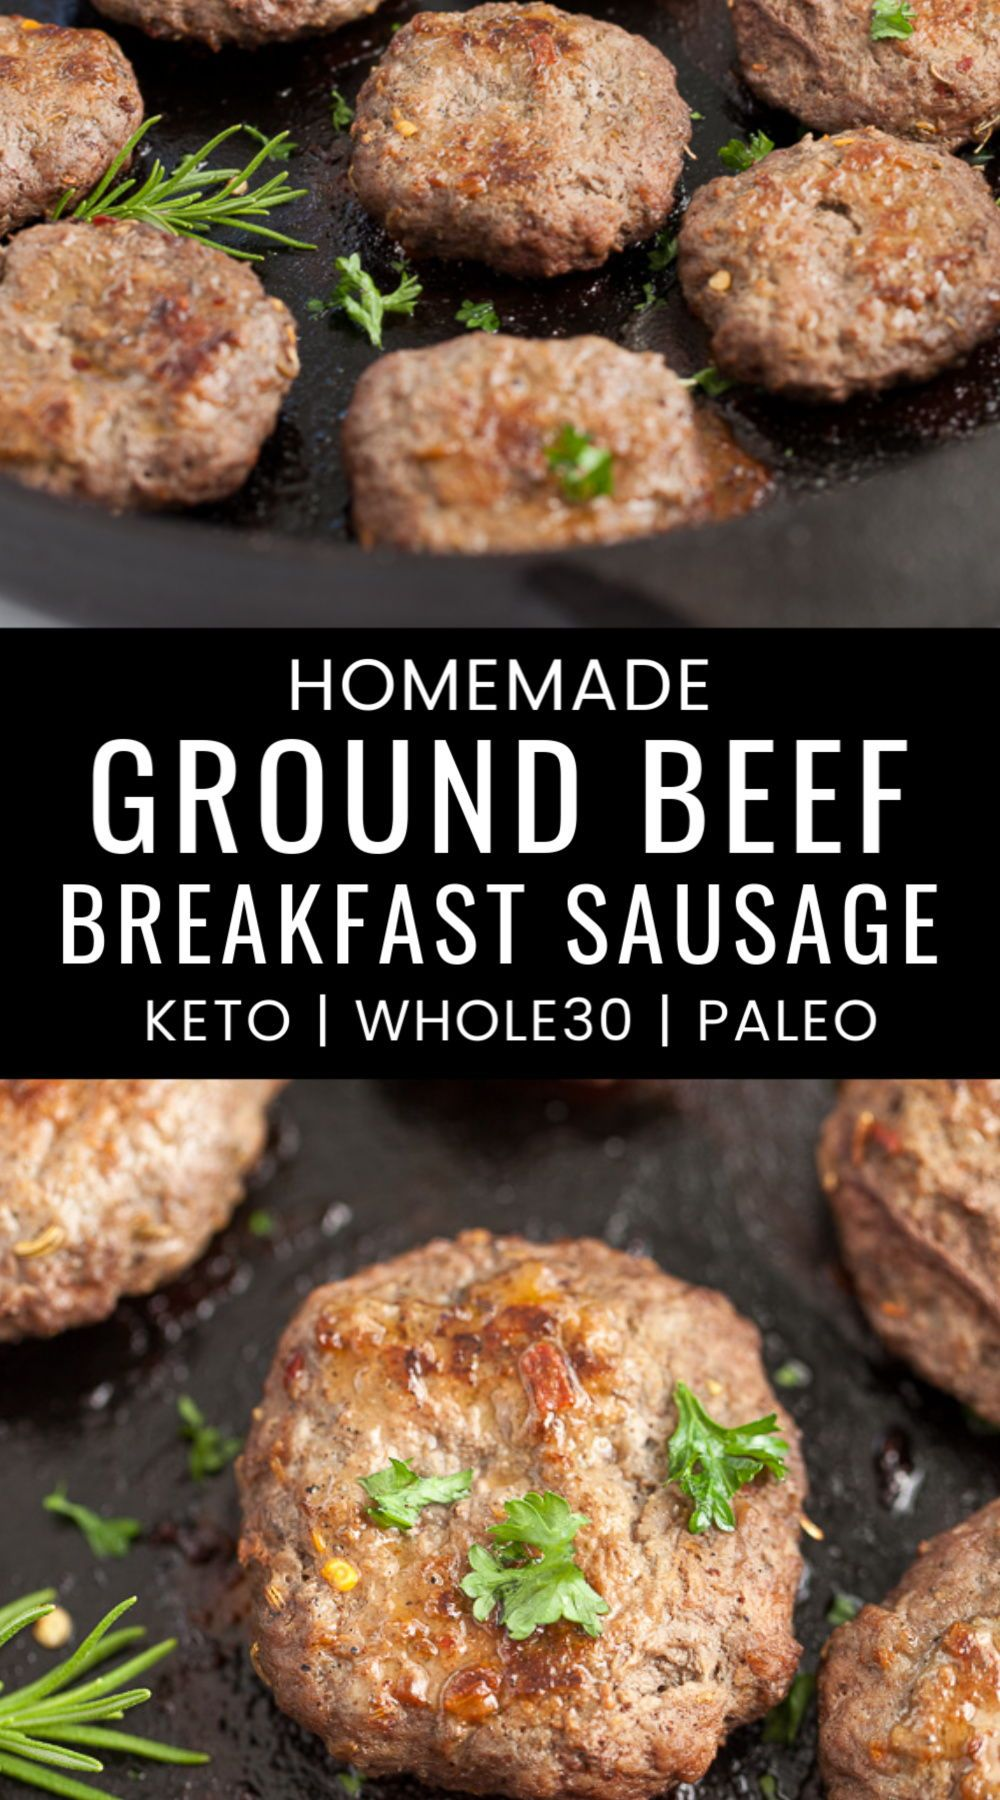 Ground Beef Breakfast Sausage Keto Whole30 Paleo In 2020 Beef Sausage Recipes Ground Beef Breakfast Homemade Sausage Recipes